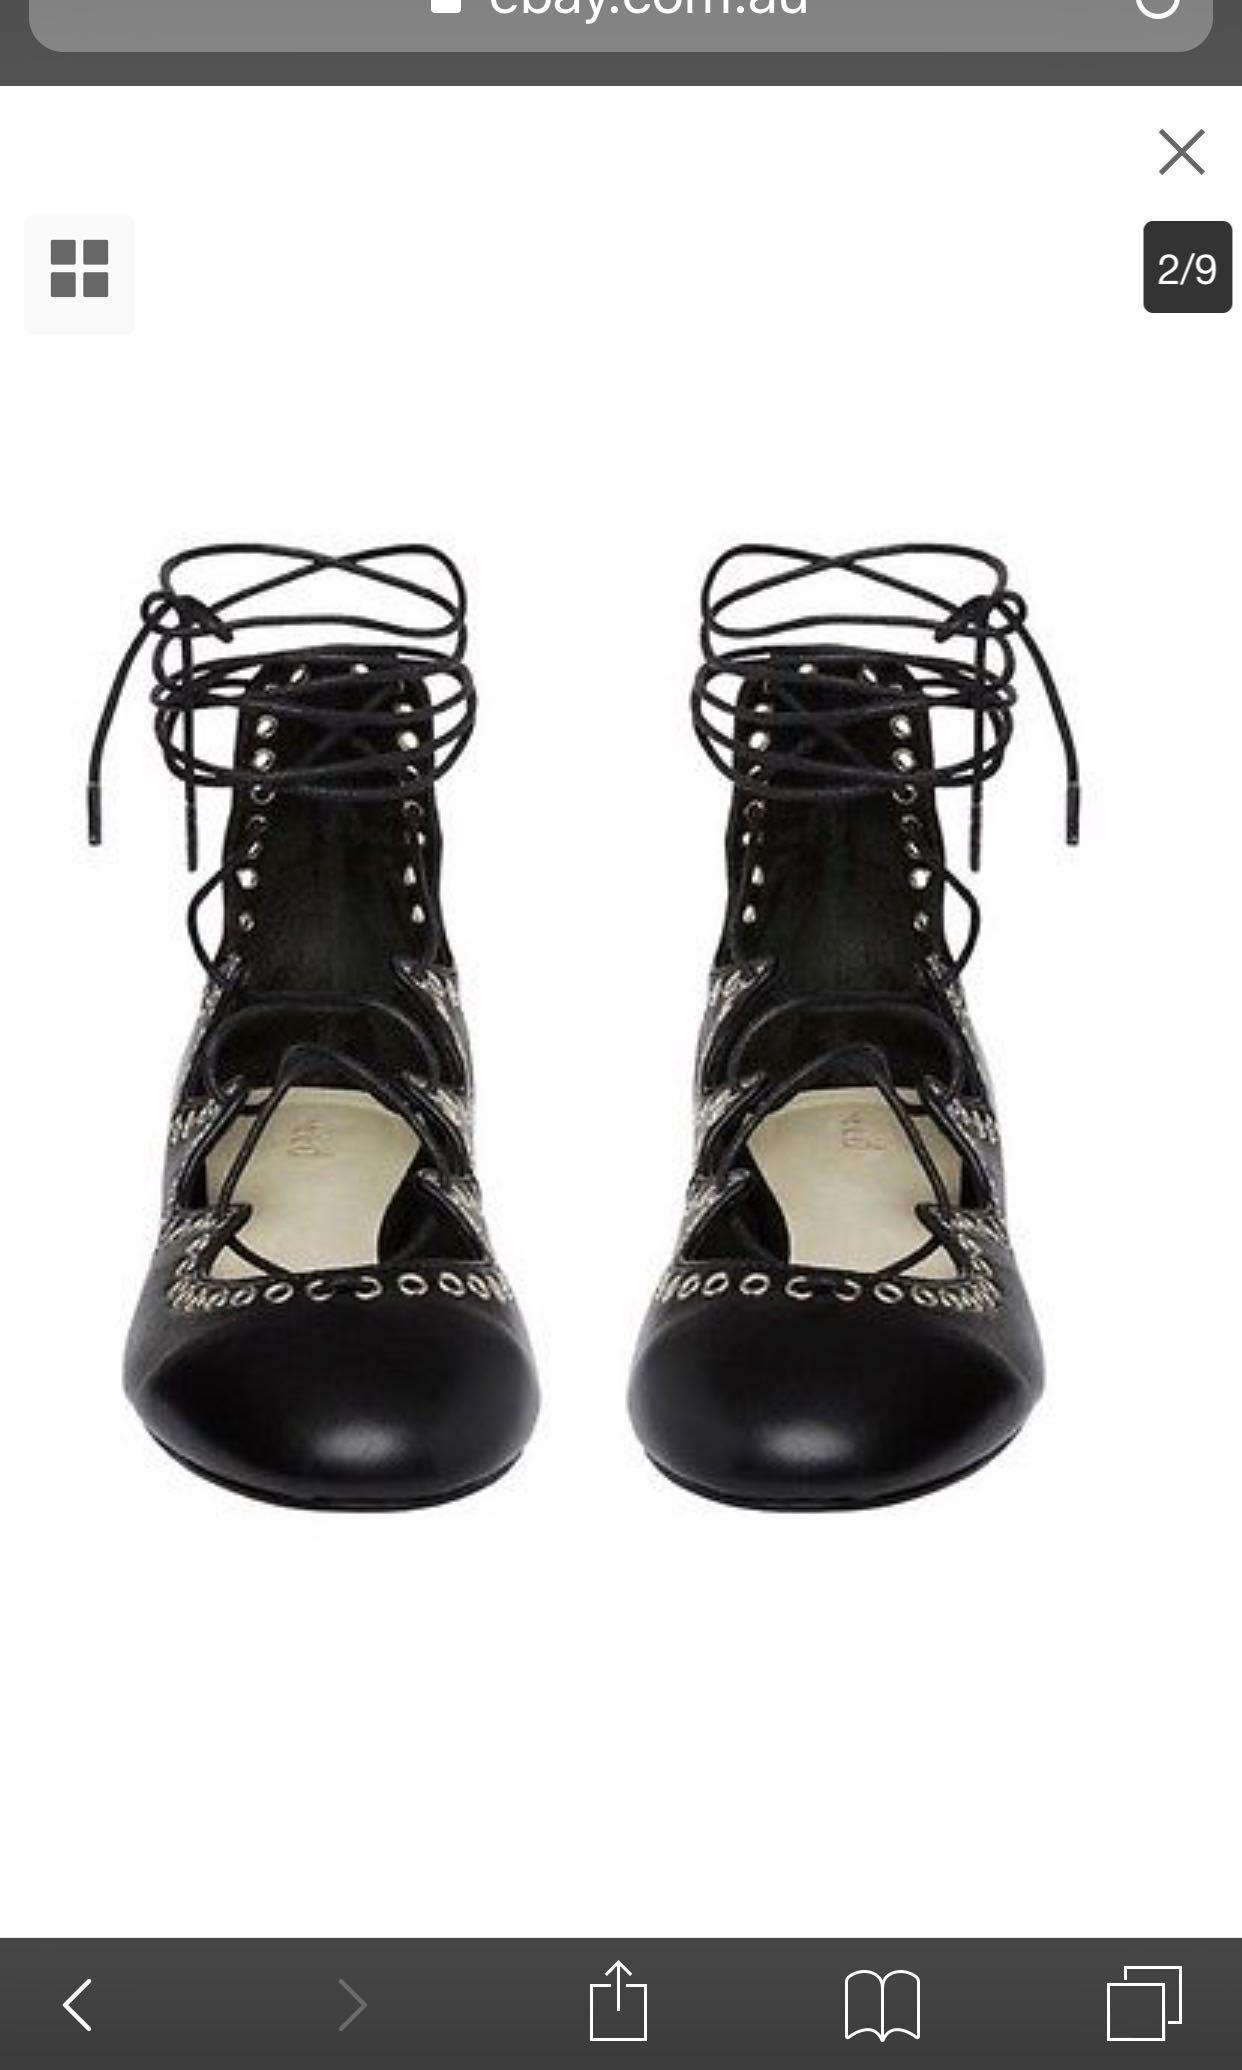 Seed Black Scarlett Lace Up shows